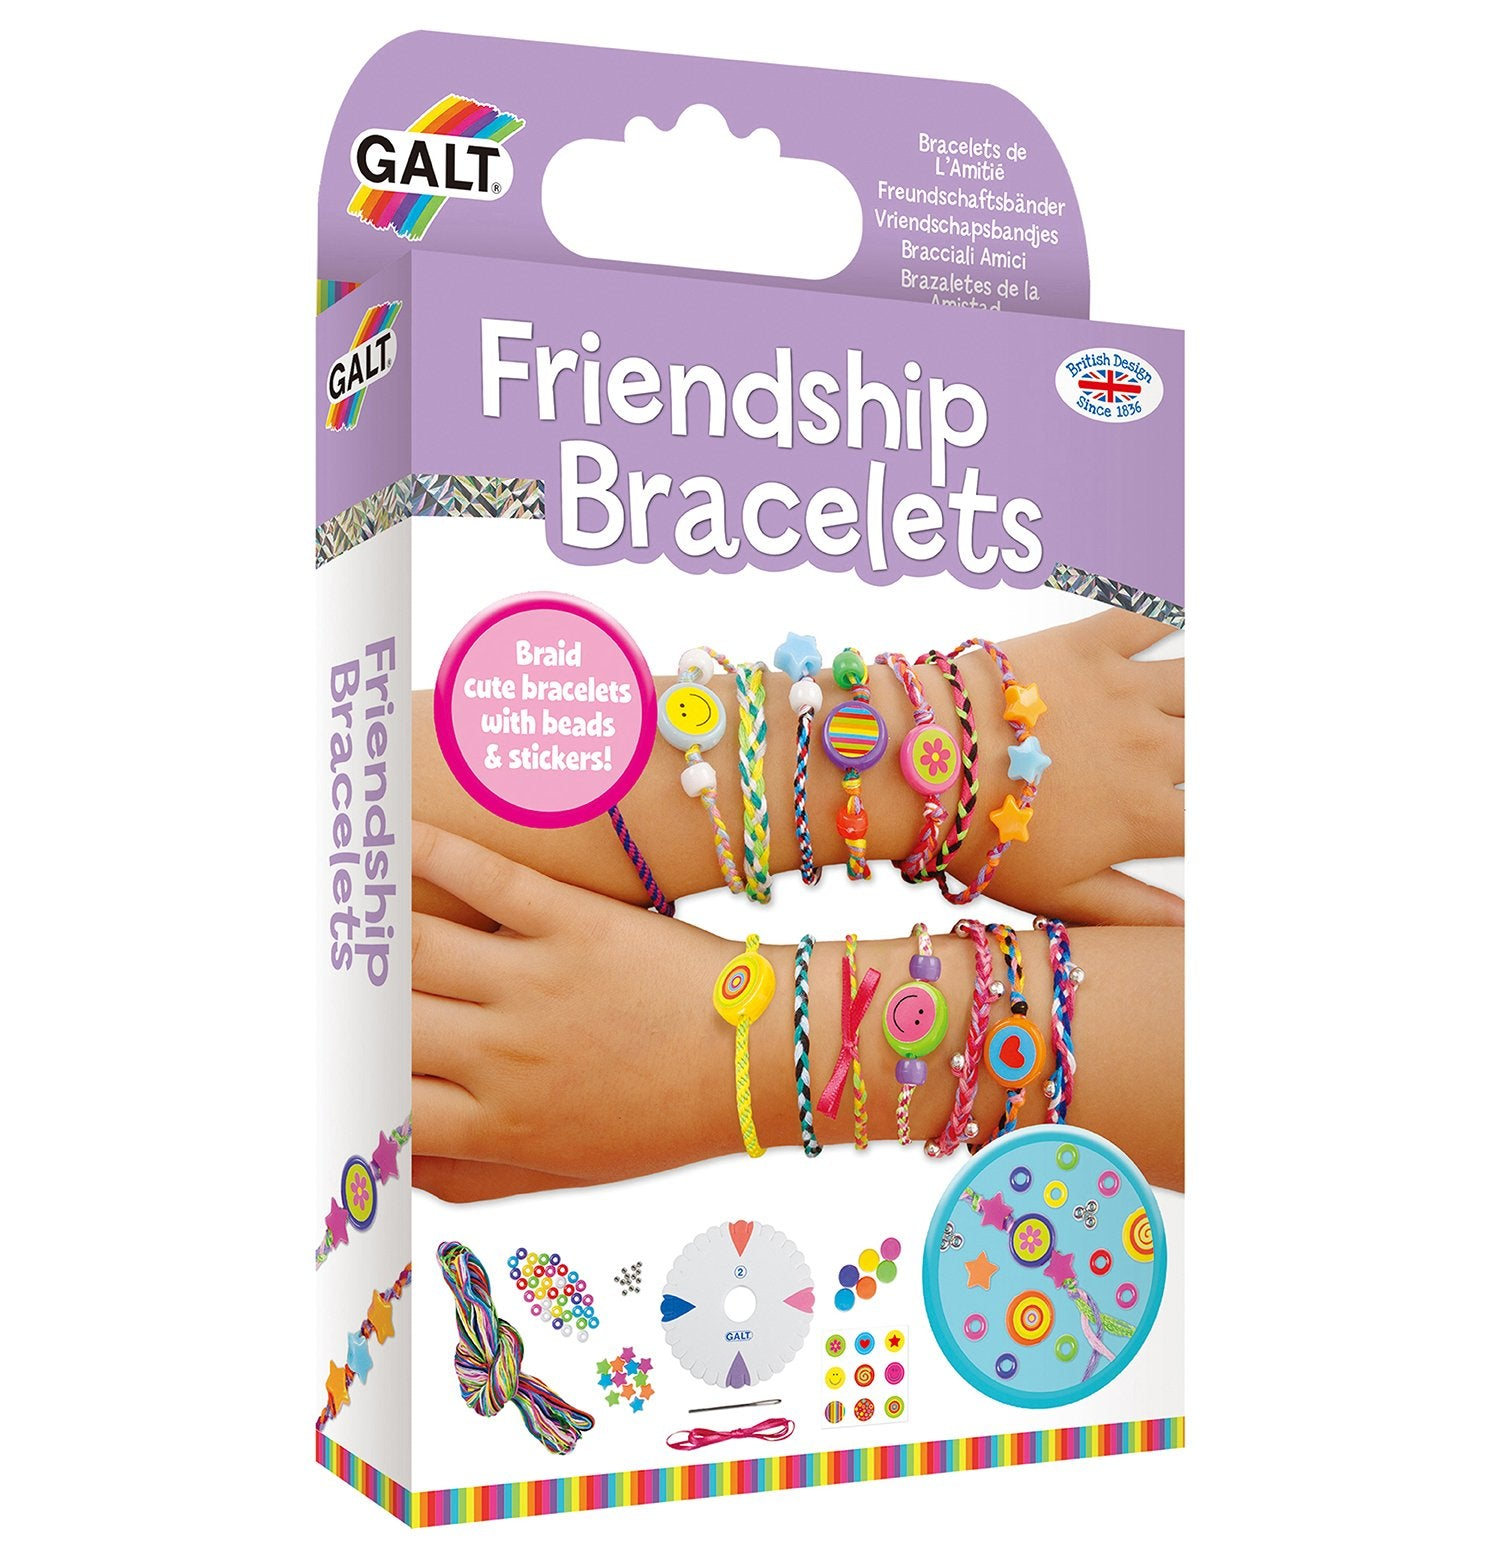 Friendship Bracelets - Galt